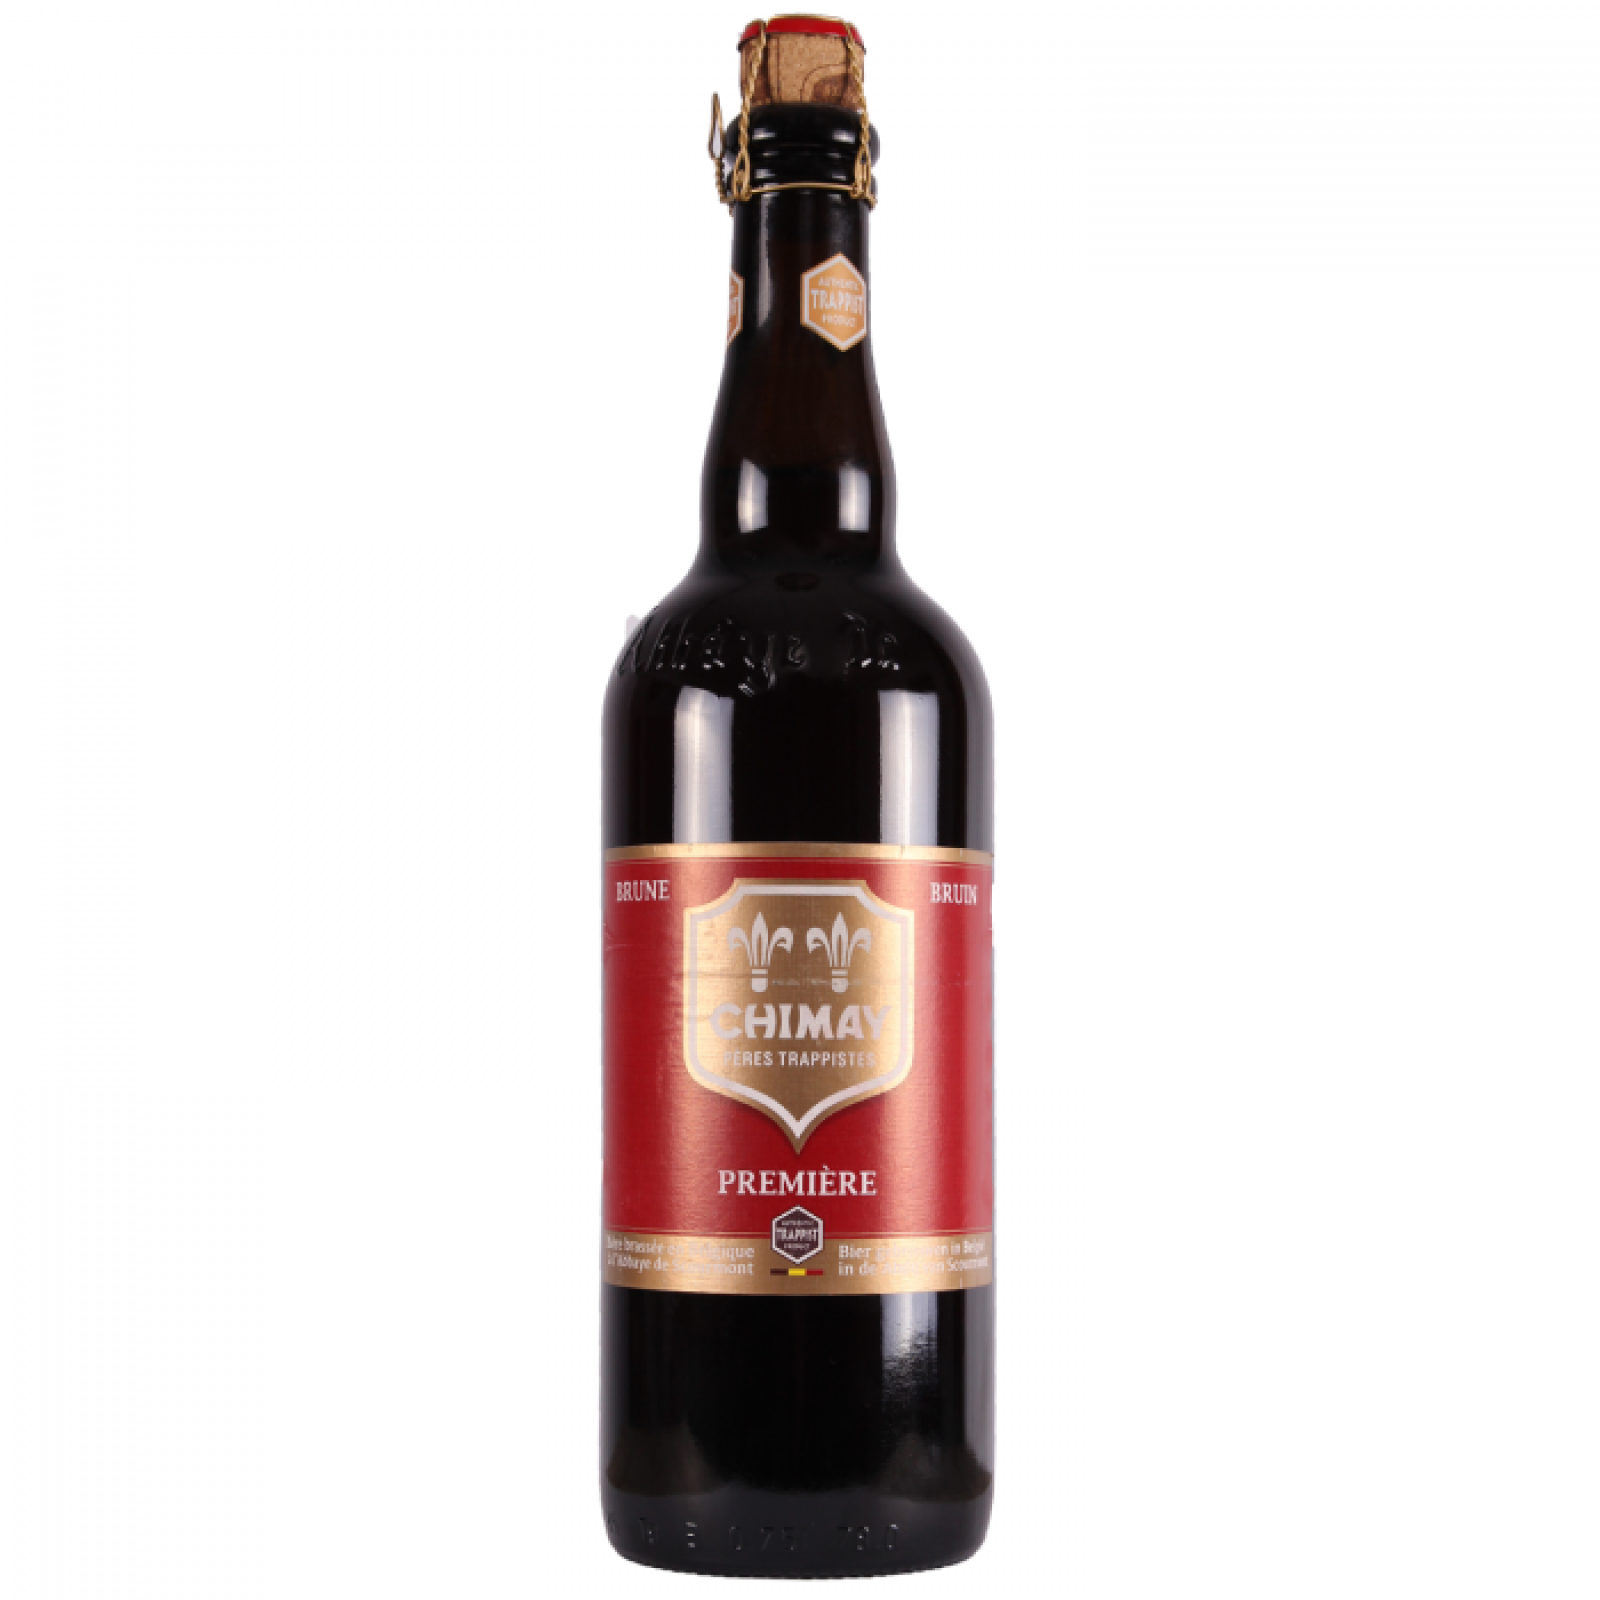 Chimay Premier 7% 750ml Trappist Beer